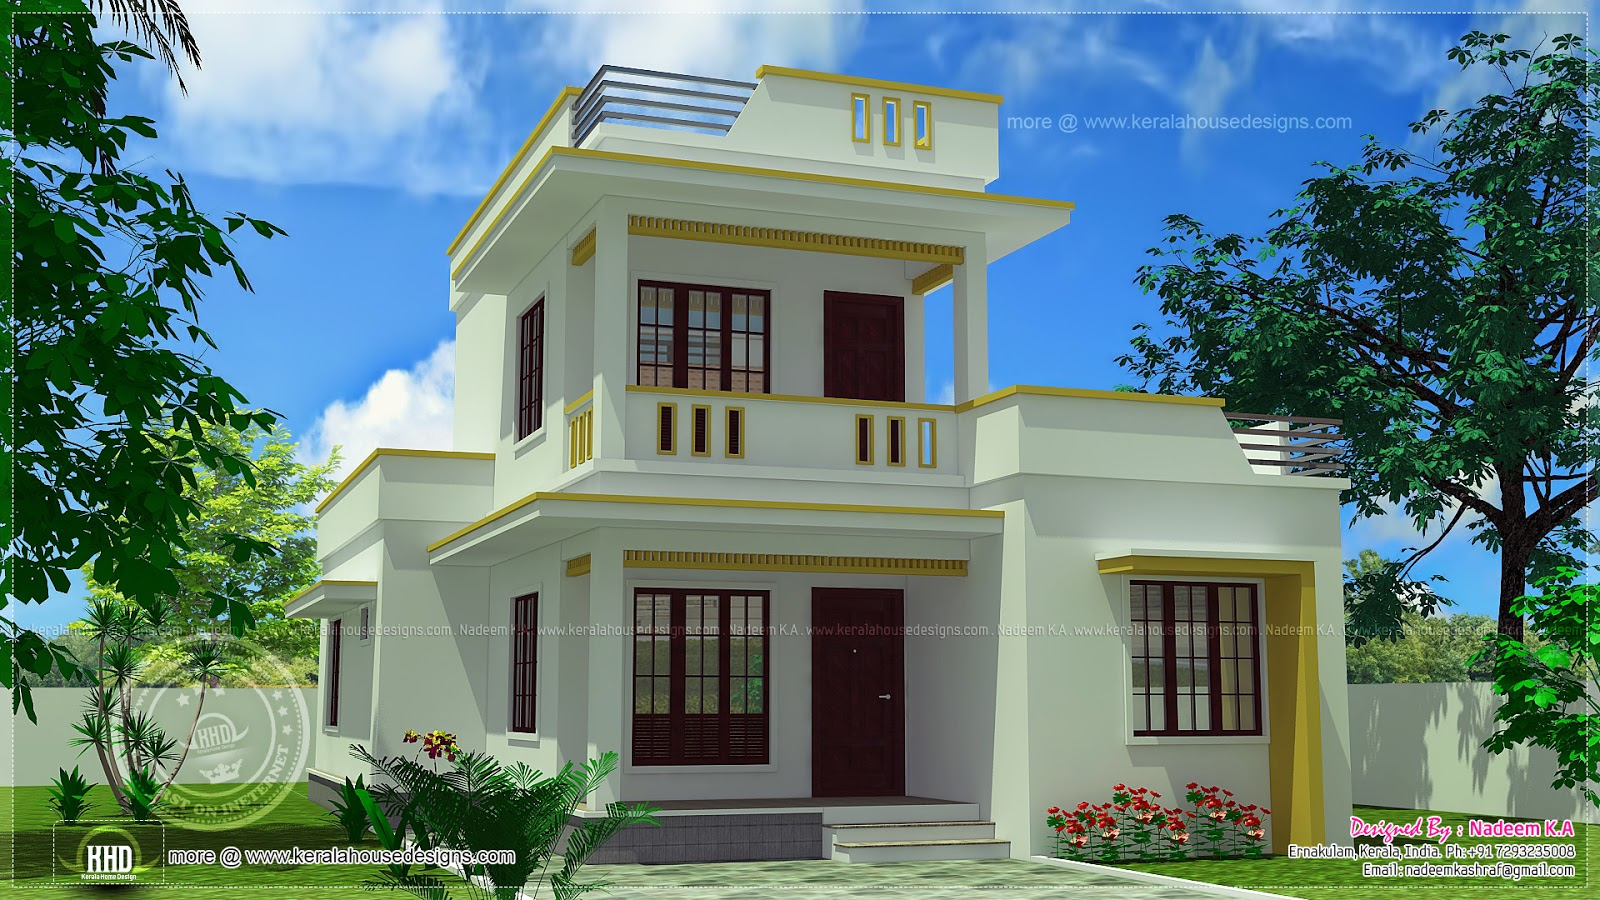 August 2013 kerala home design and floor plans for Home building design